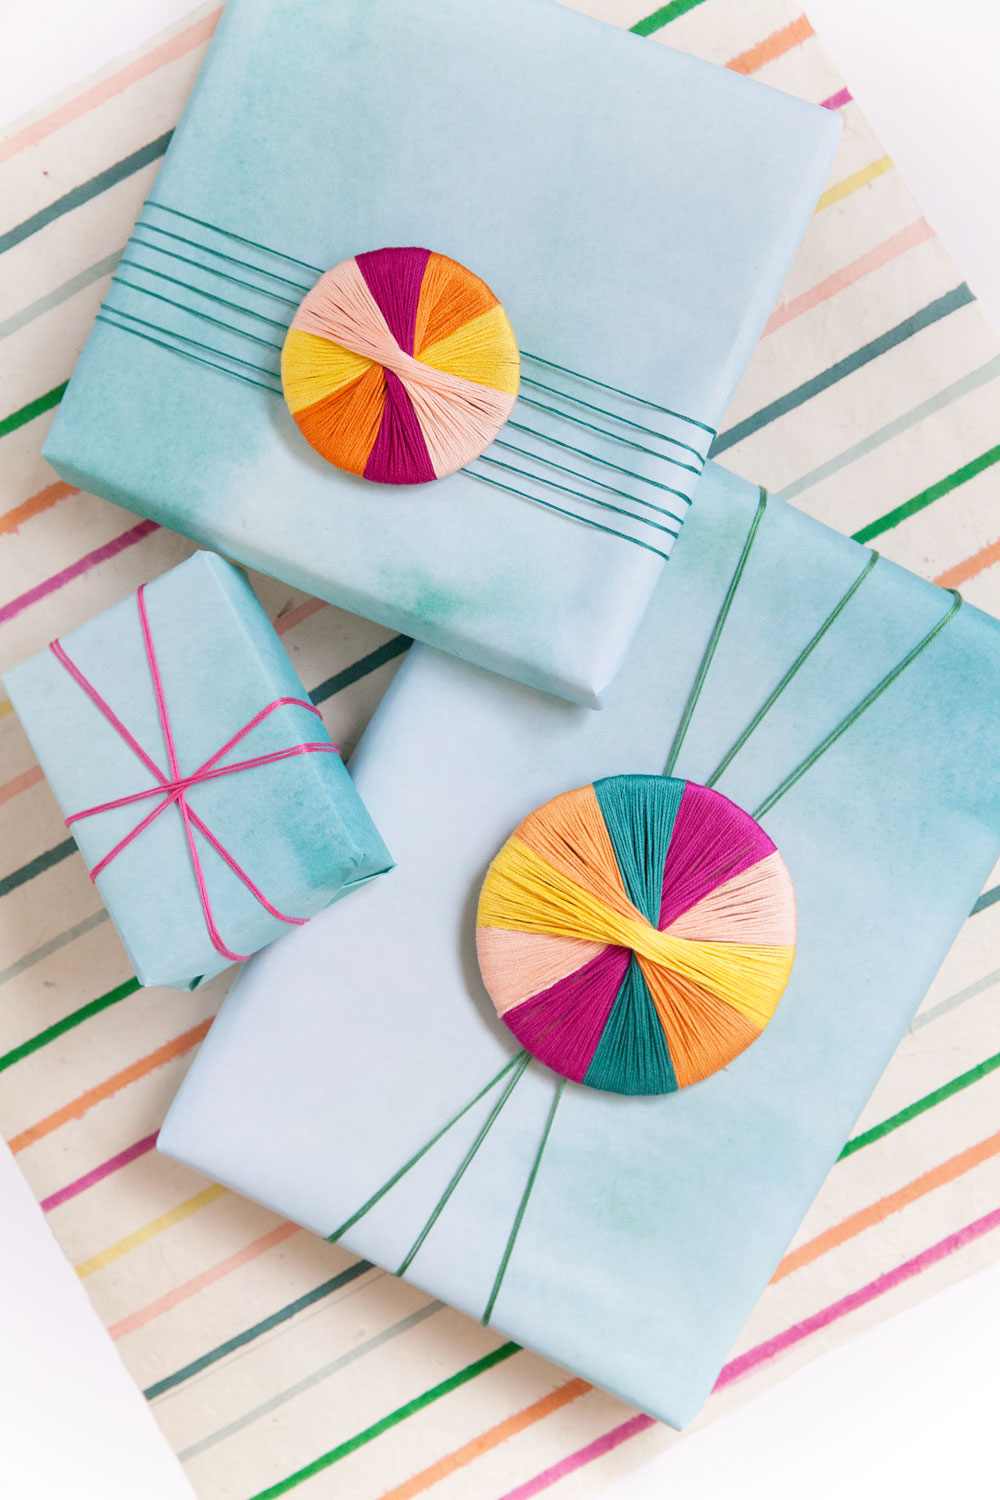 gift-wrap-ideas-with-embroidery-floss